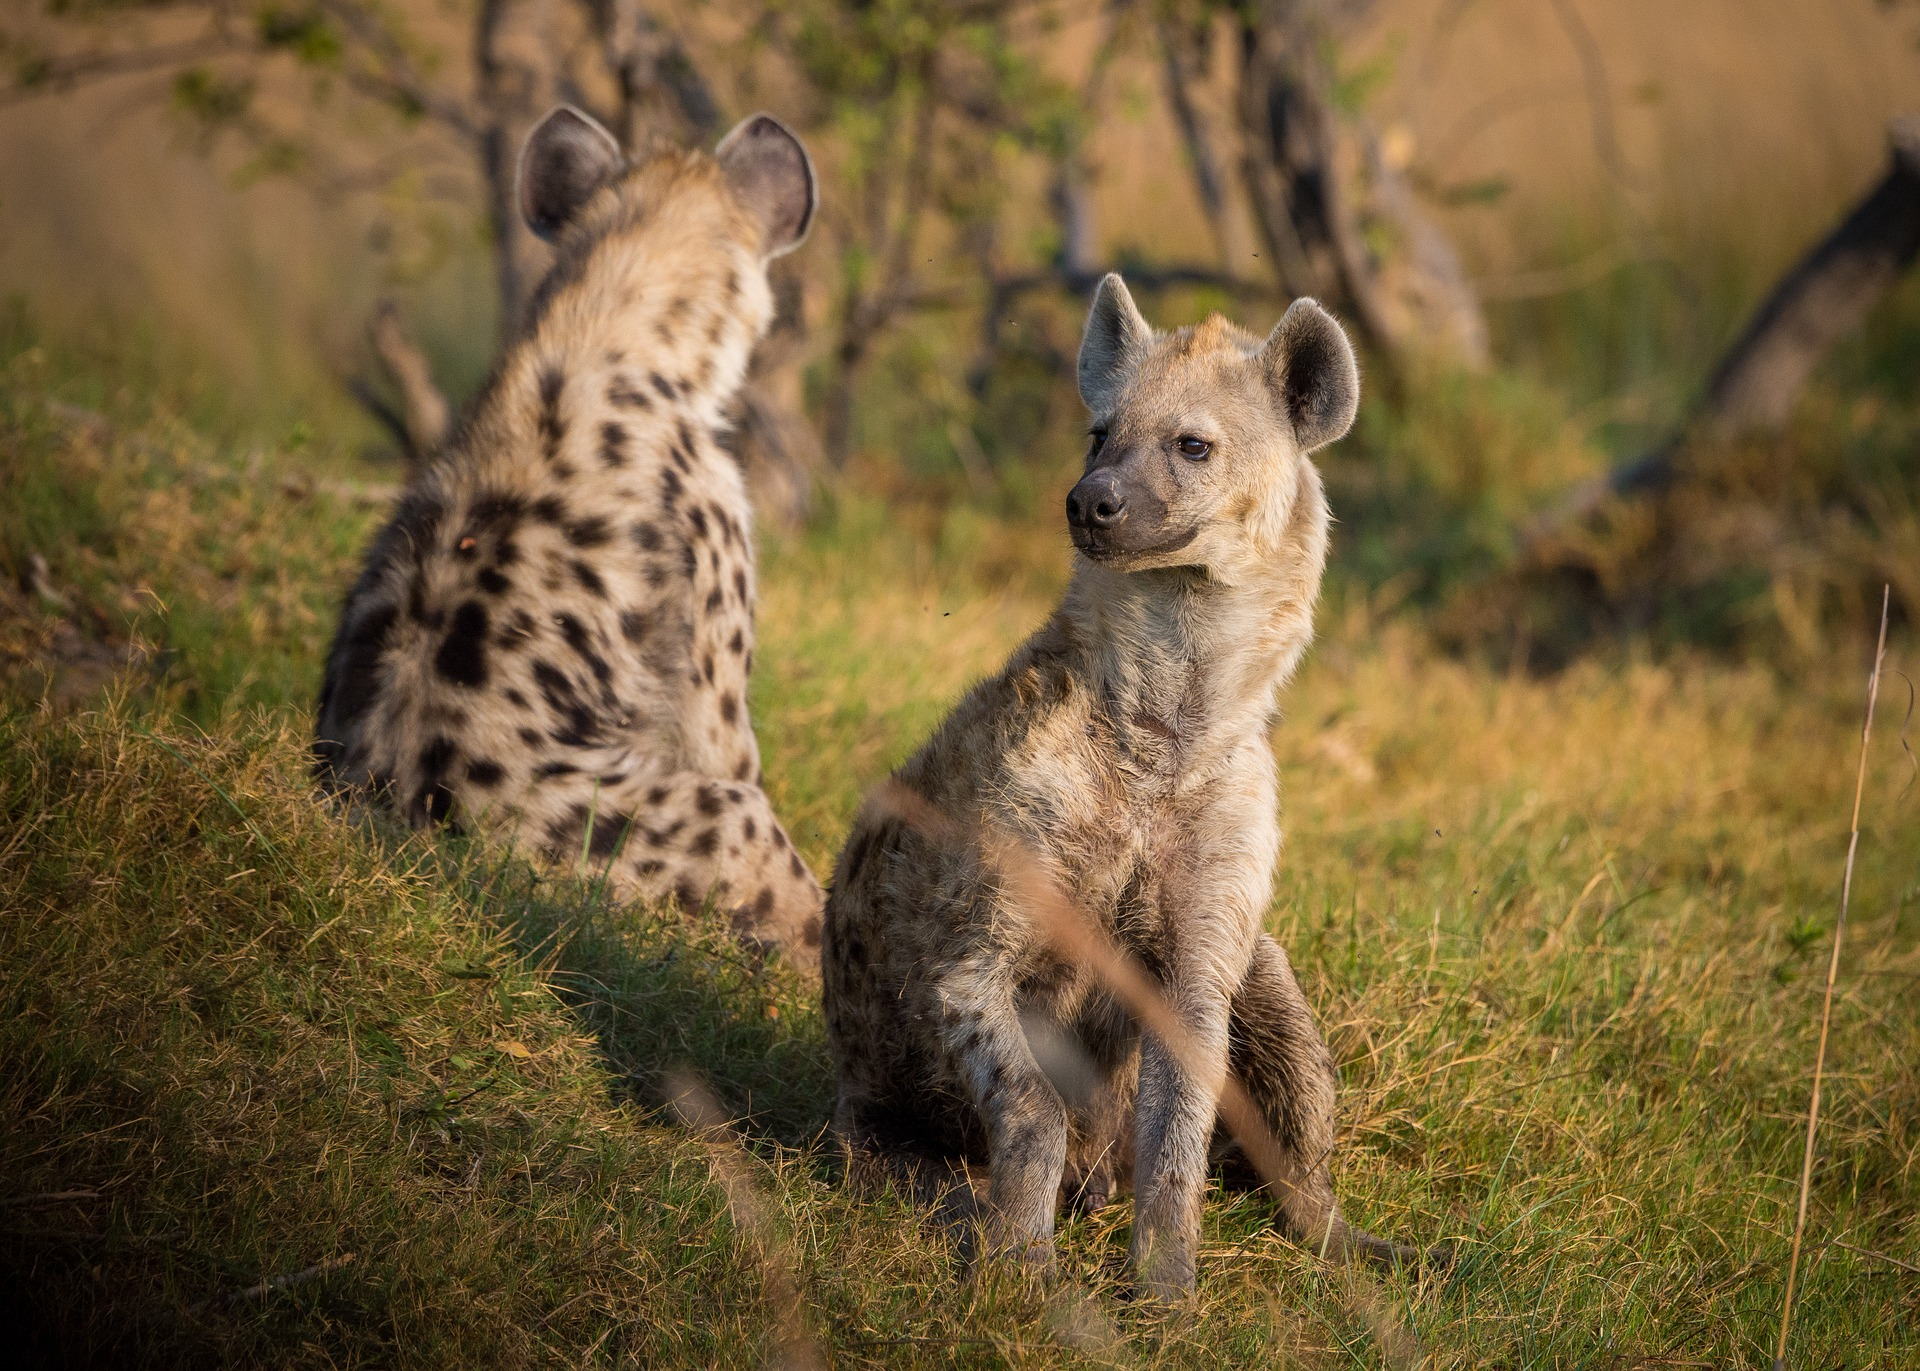 is a hyena a canine?